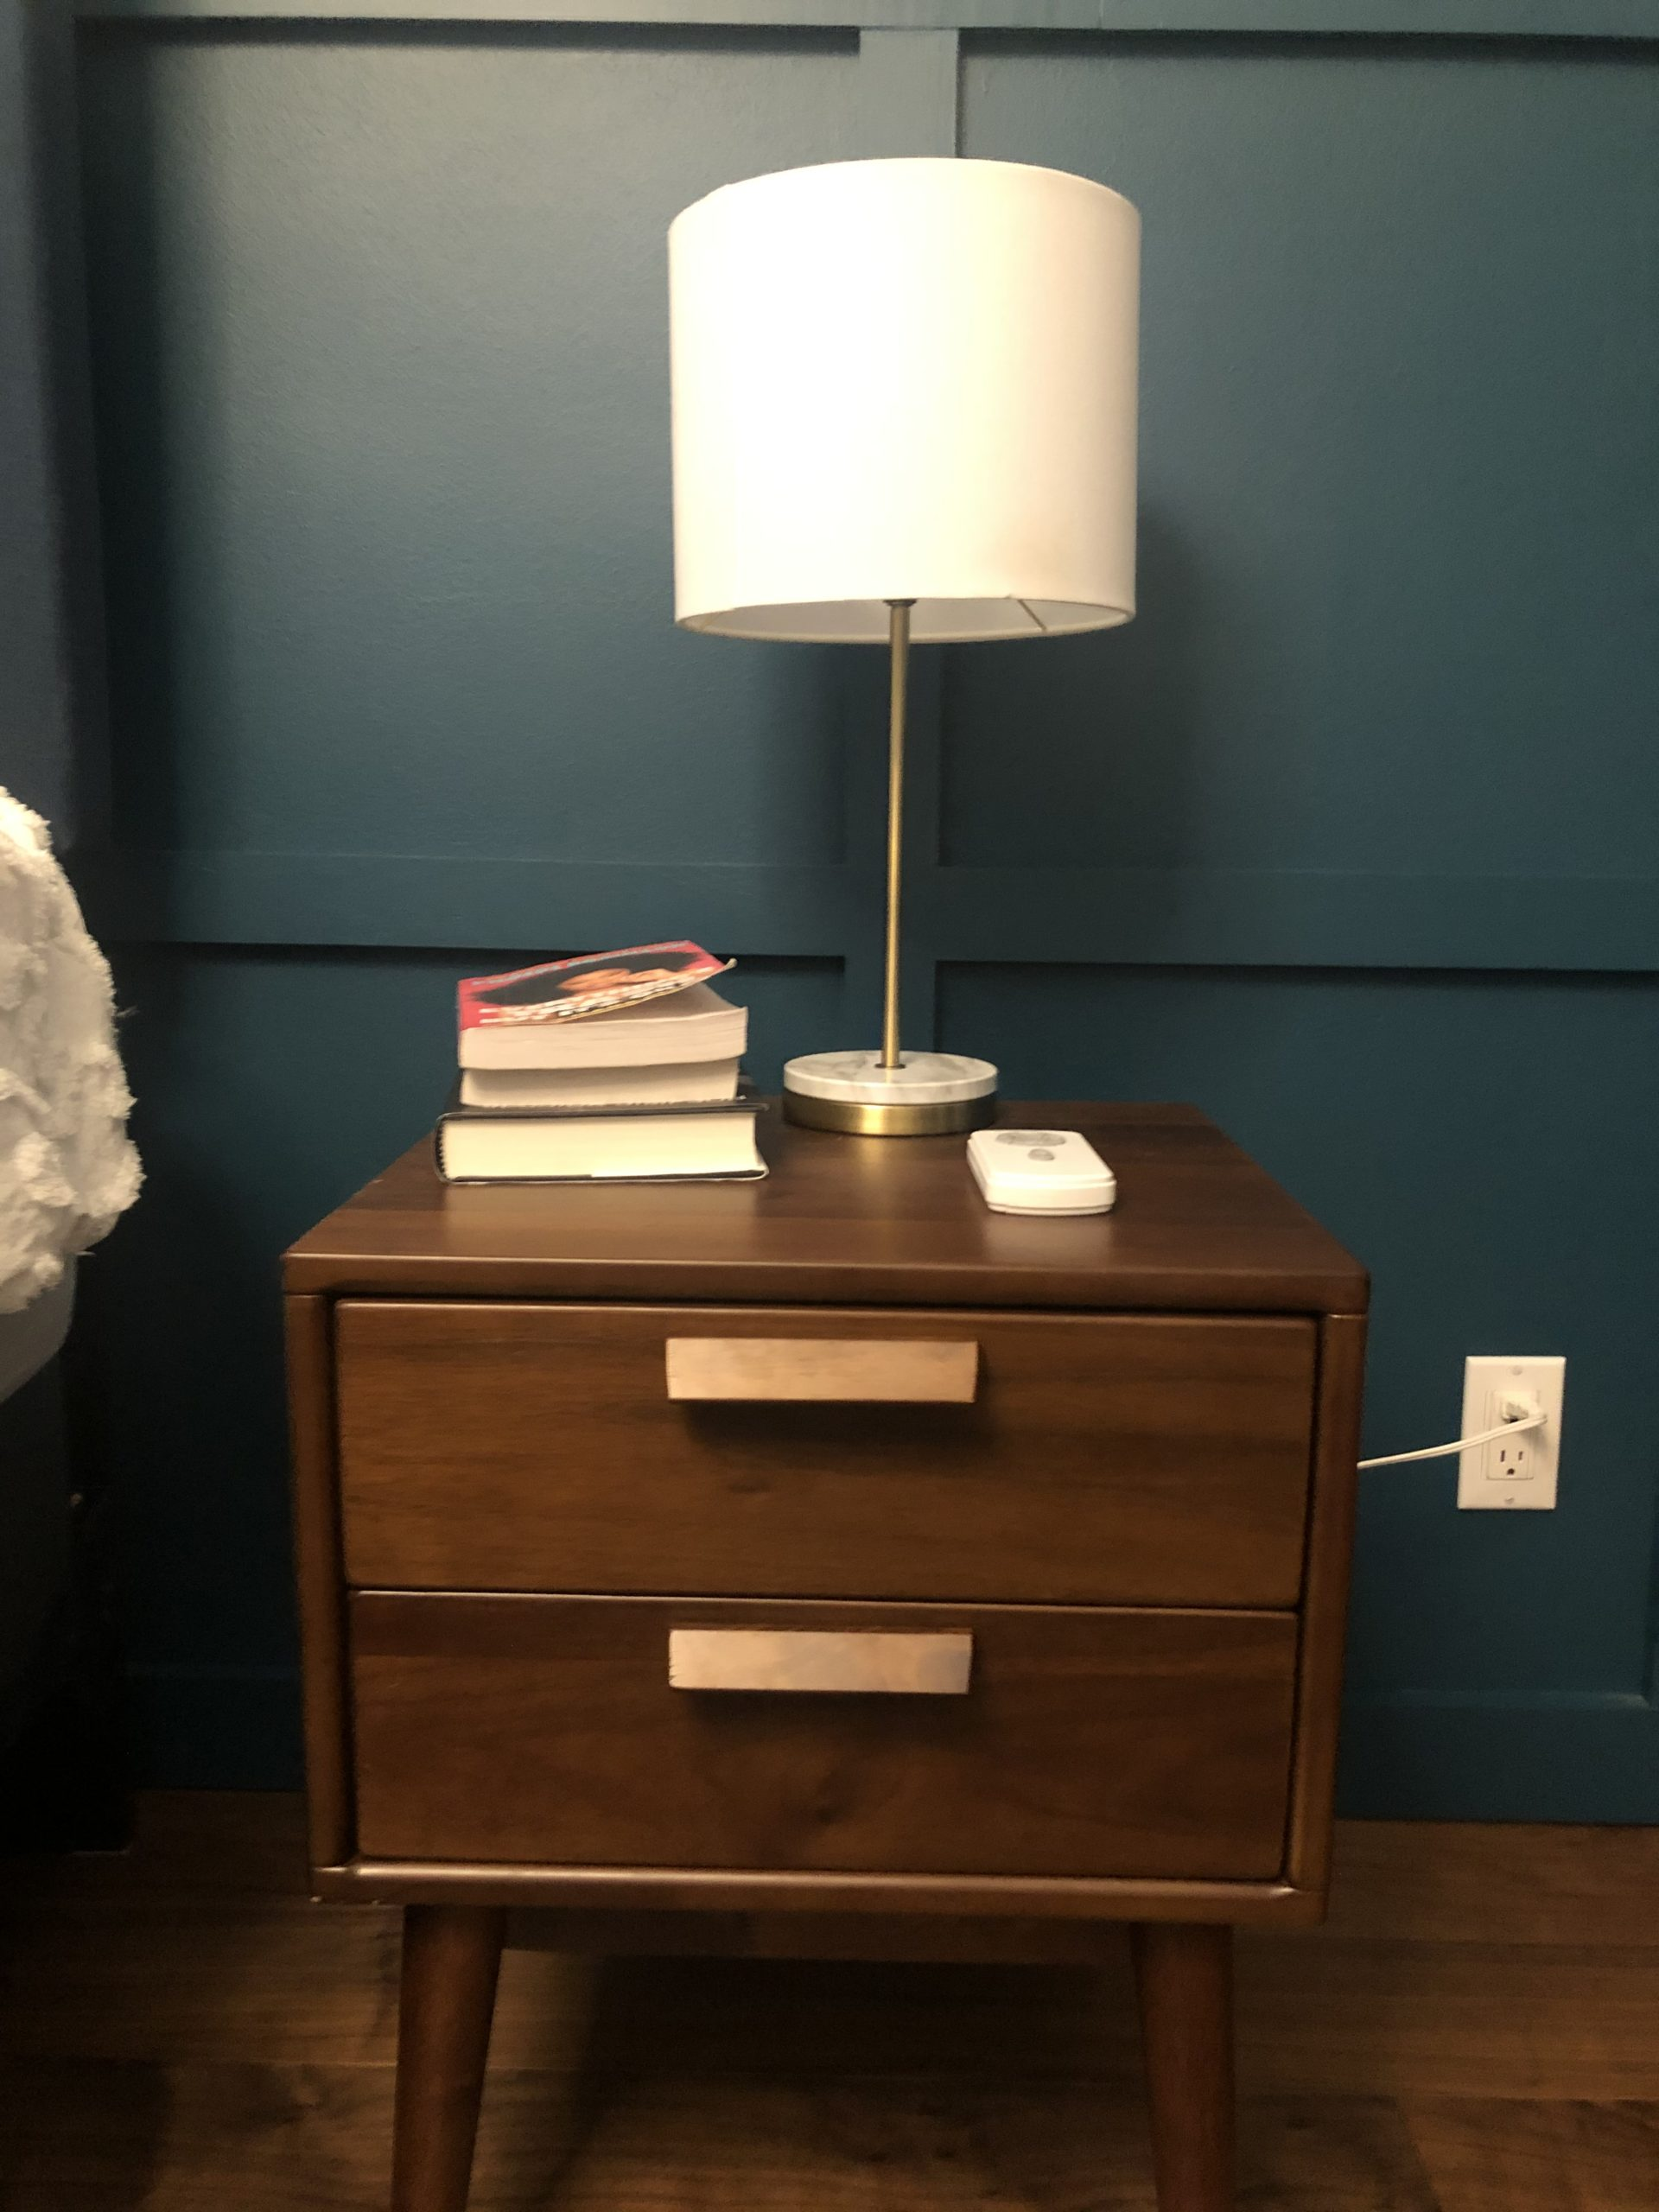 stylized retro, wooden nightside table with lamp